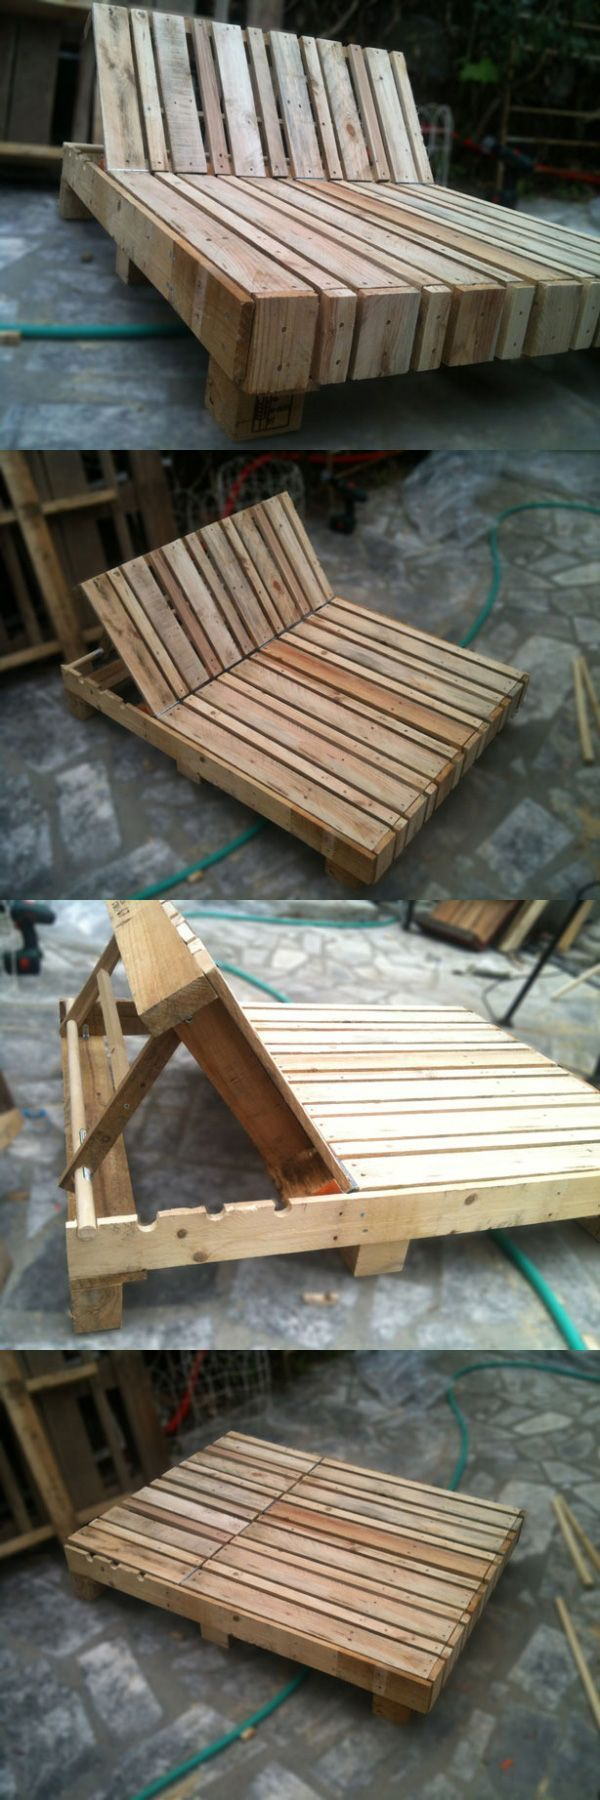 #palletDIY: 3 outdoor seating ideas anyone can build. Pallet Lounger: Plop some weather-proof cushions on this thing and you've got a versatile seating solution VIA @1001pallets